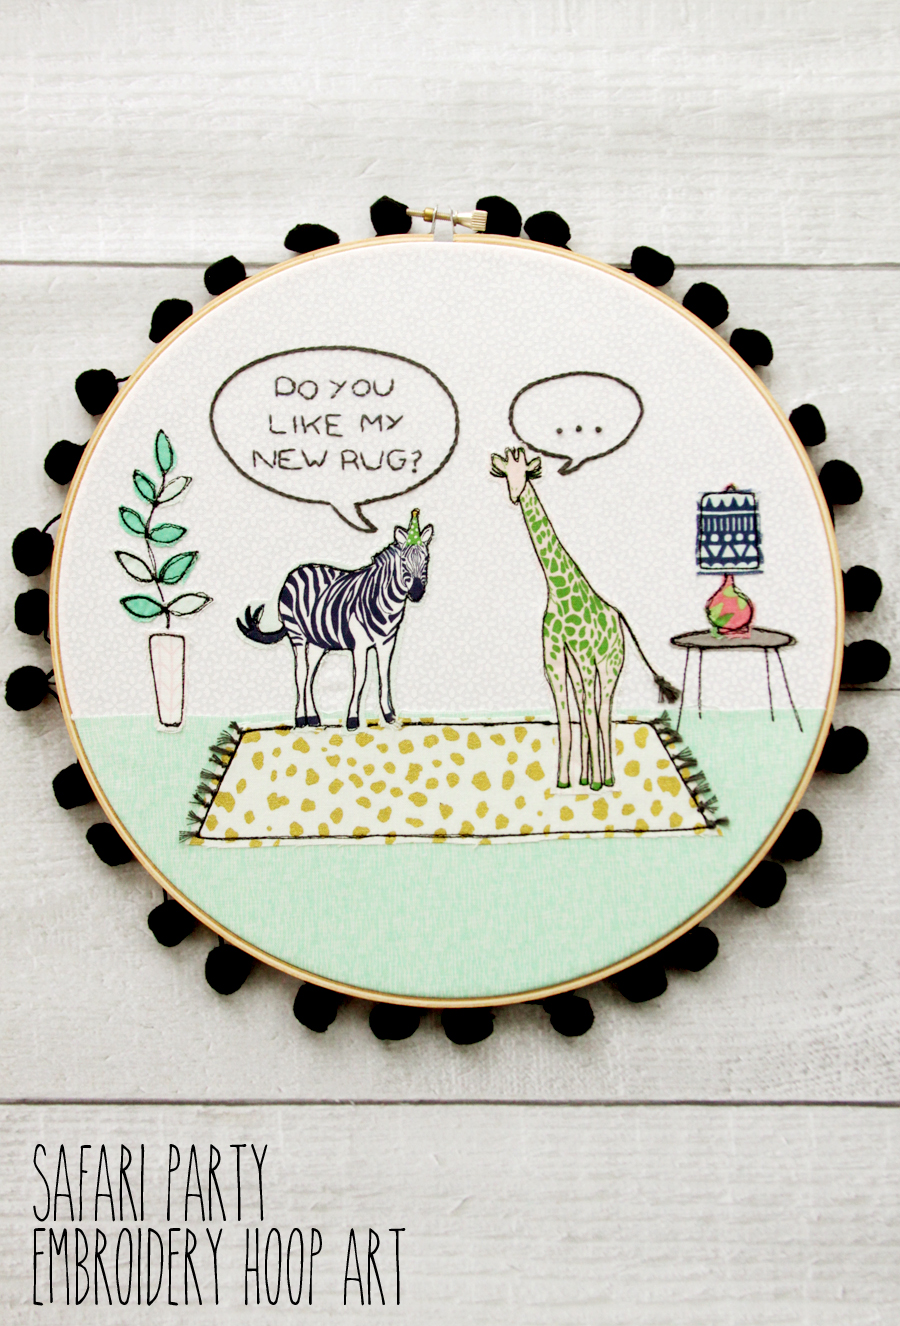 Fun Safari Party Embroidery Hoop Art